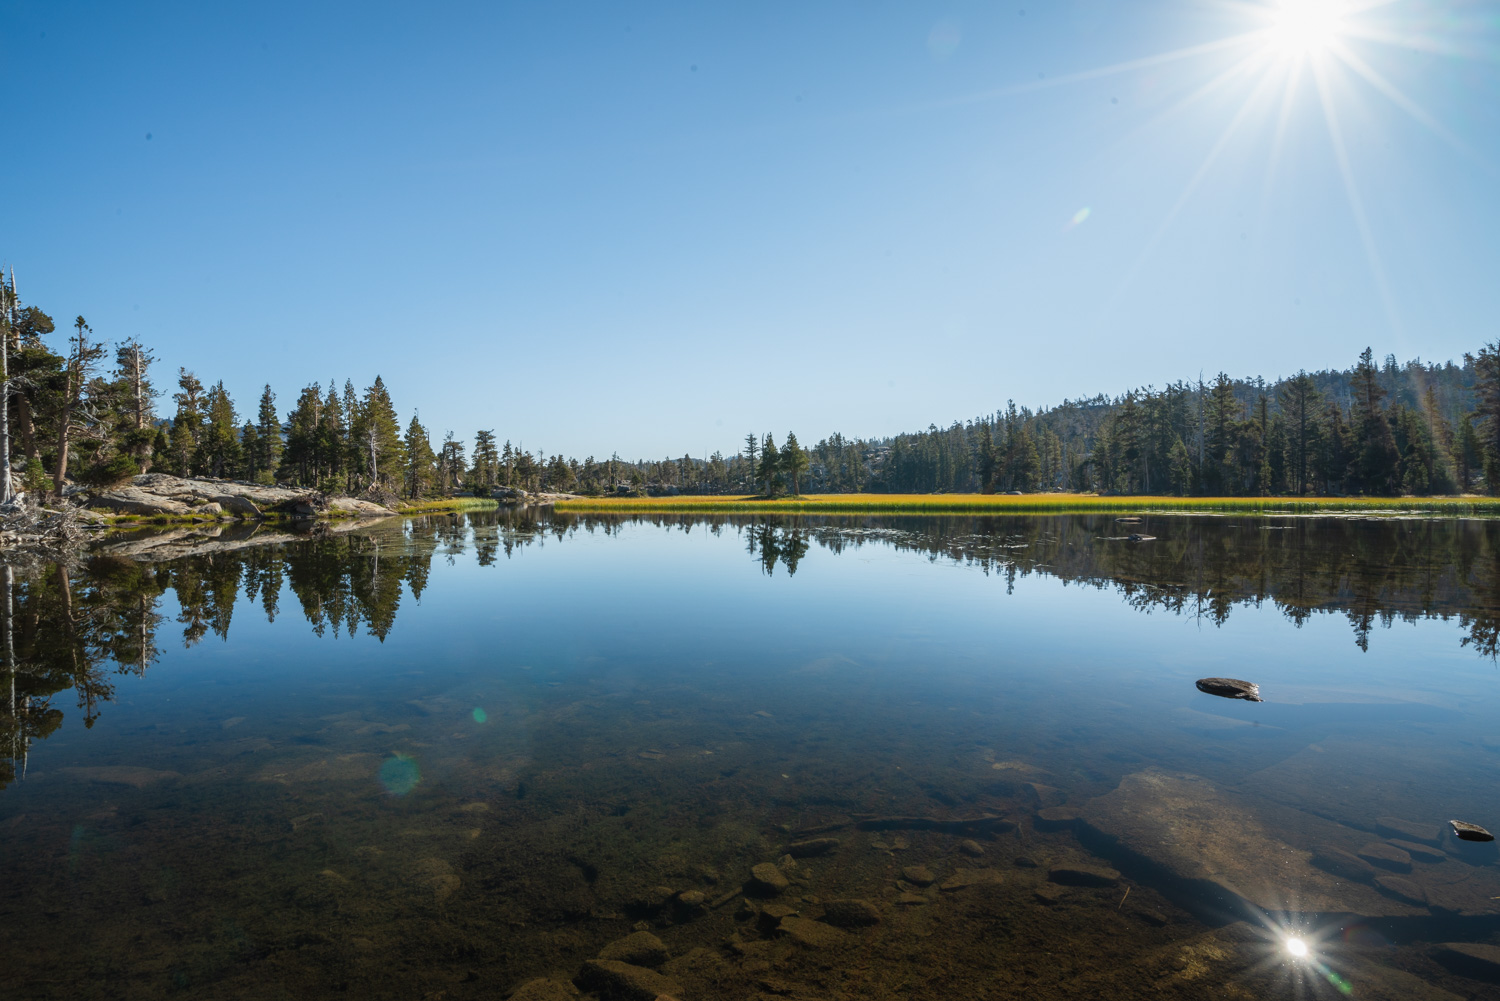 A peaceful Upper Velma Lake